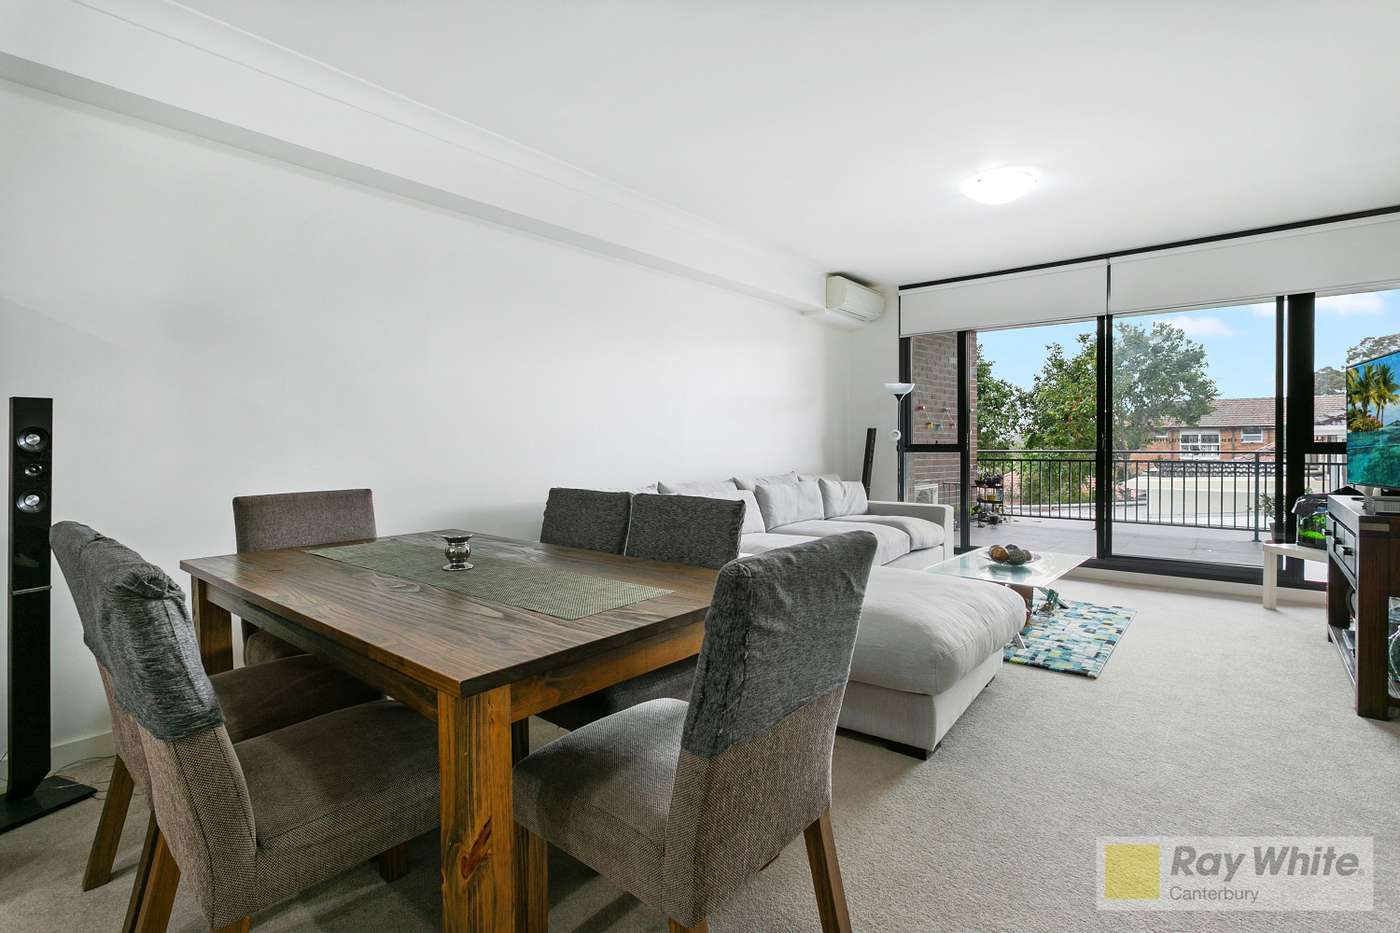 Main view of Homely apartment listing, 103/193 Lakemba Street, Lakemba, NSW 2195